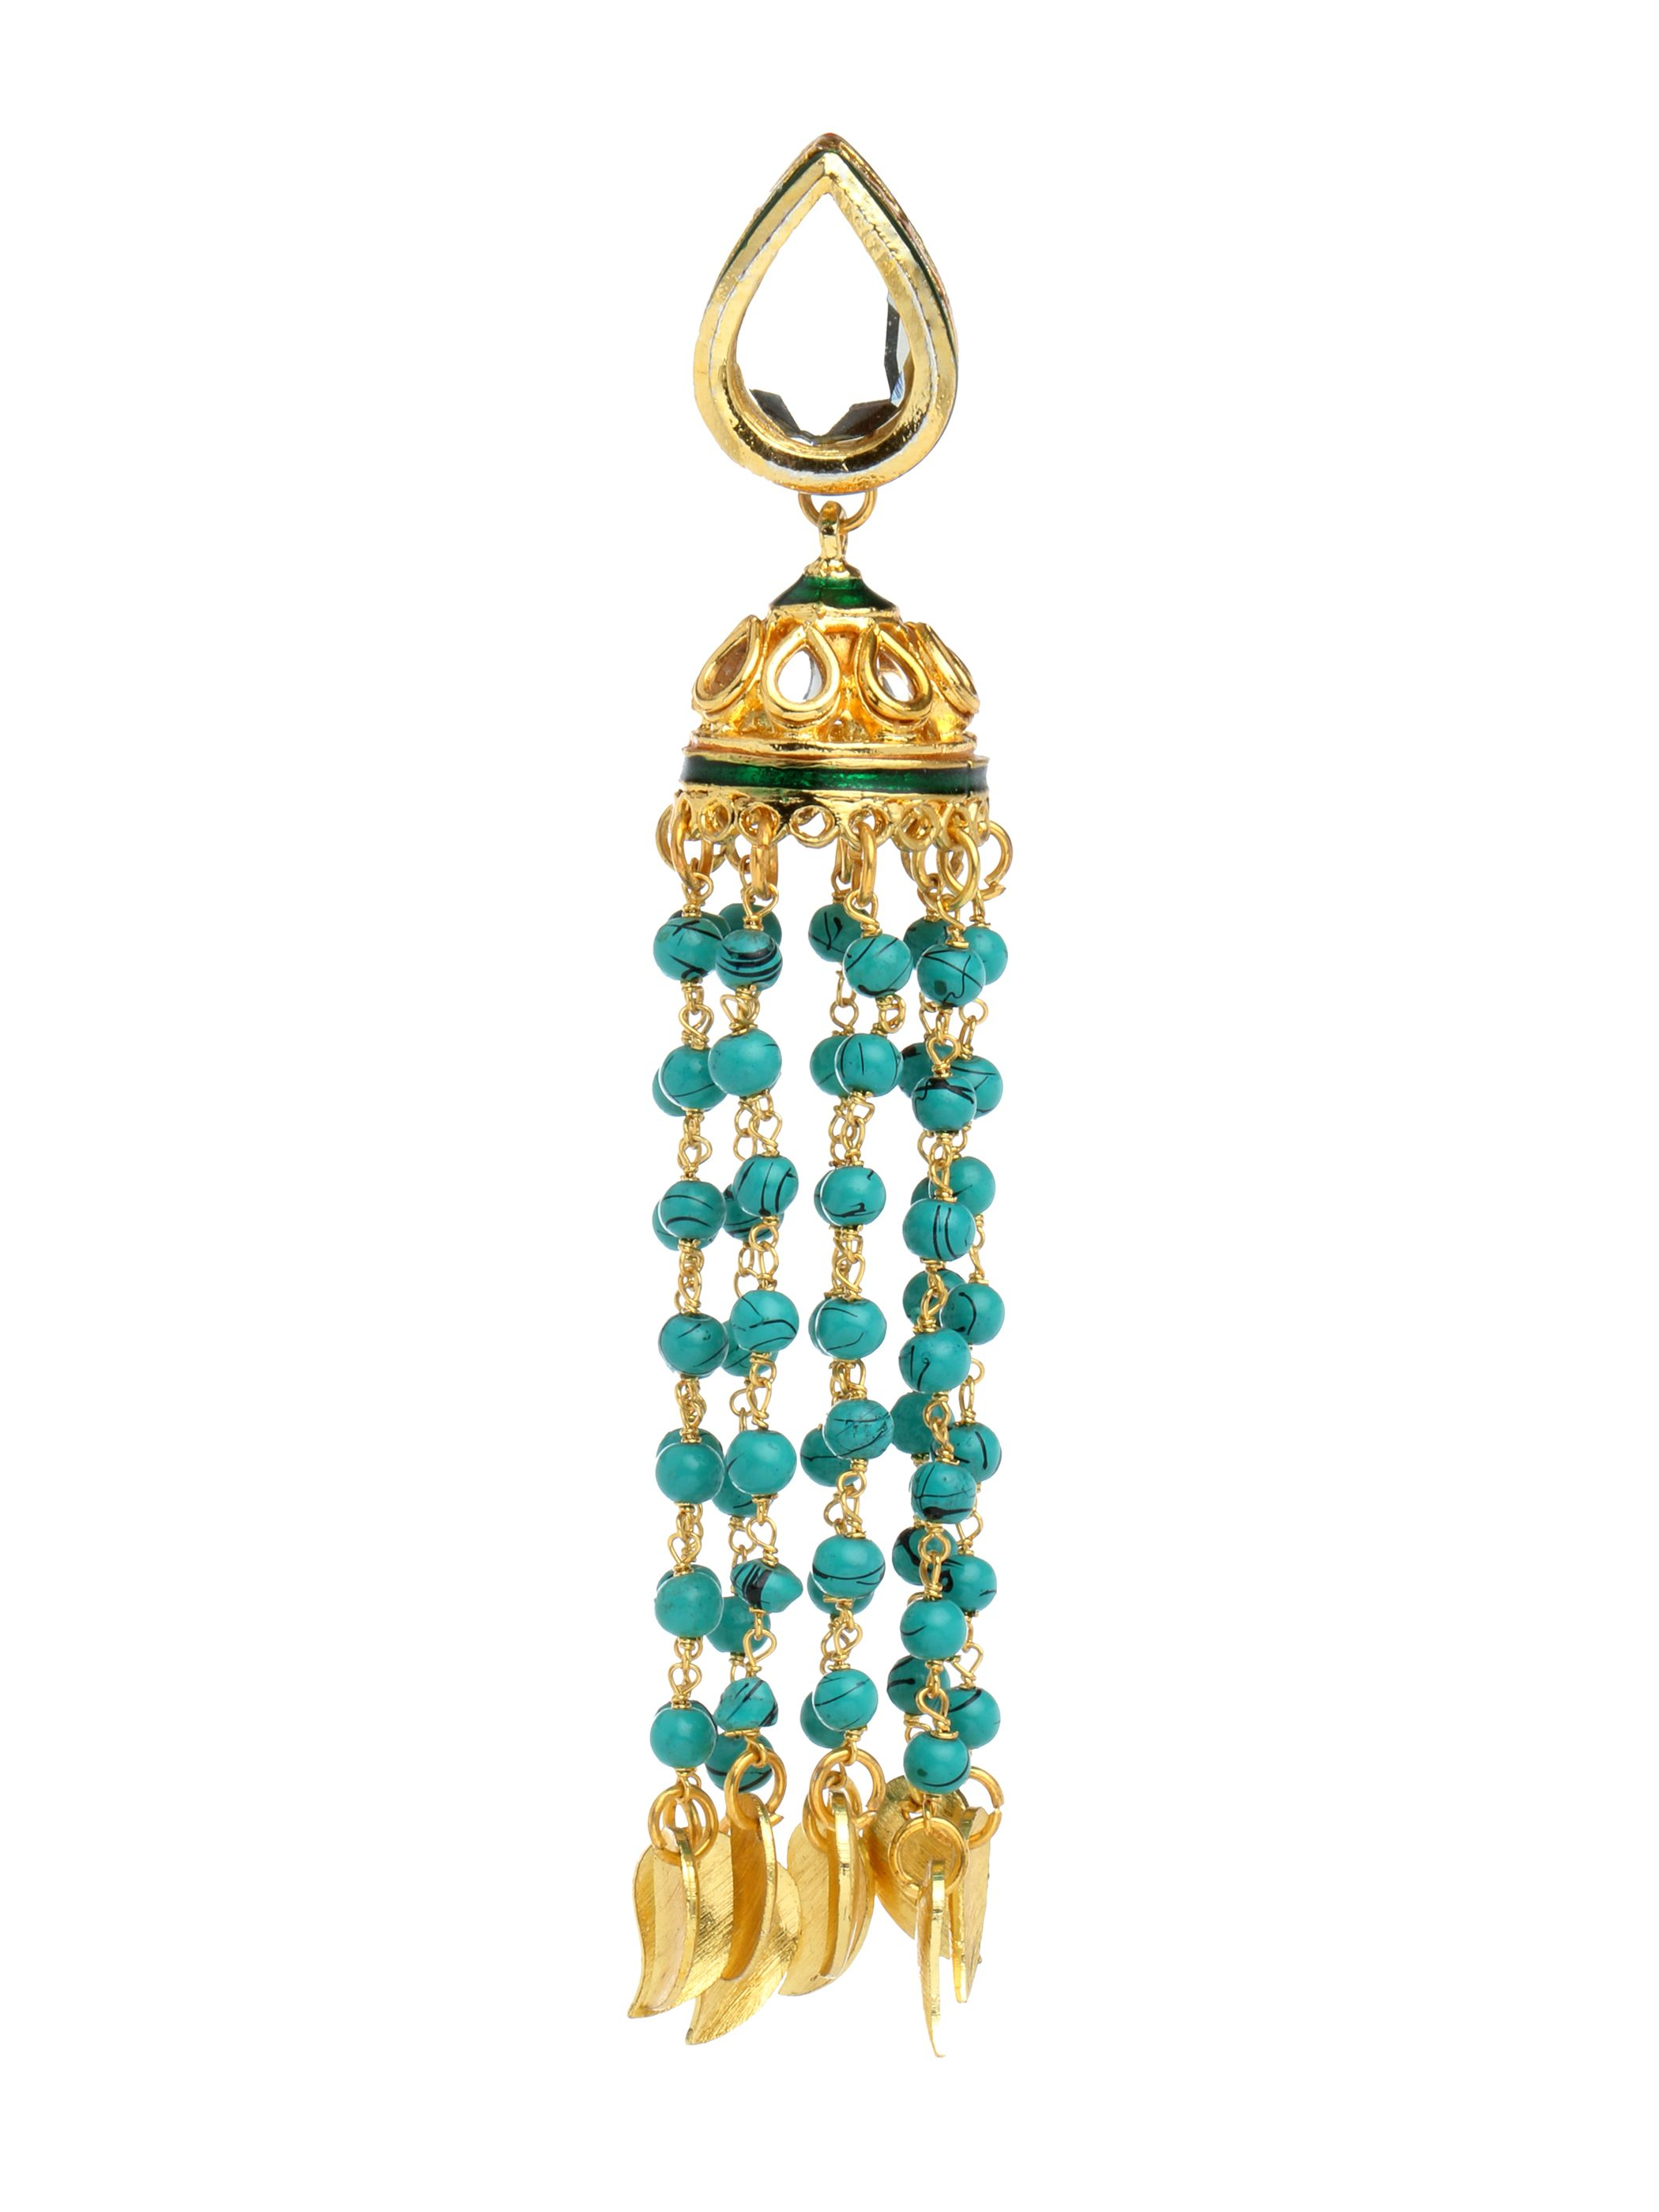 Turquoise & Golden Long Earrings For Women #Ekatrra #Gold #Earring #Fashionable #Partywear #Accessories #Jewellery #Gift #Trendy #Womenshopping #onlineShopping #Stylish #Women #Stud Shop Now: http://bit.ly/1REqiUt